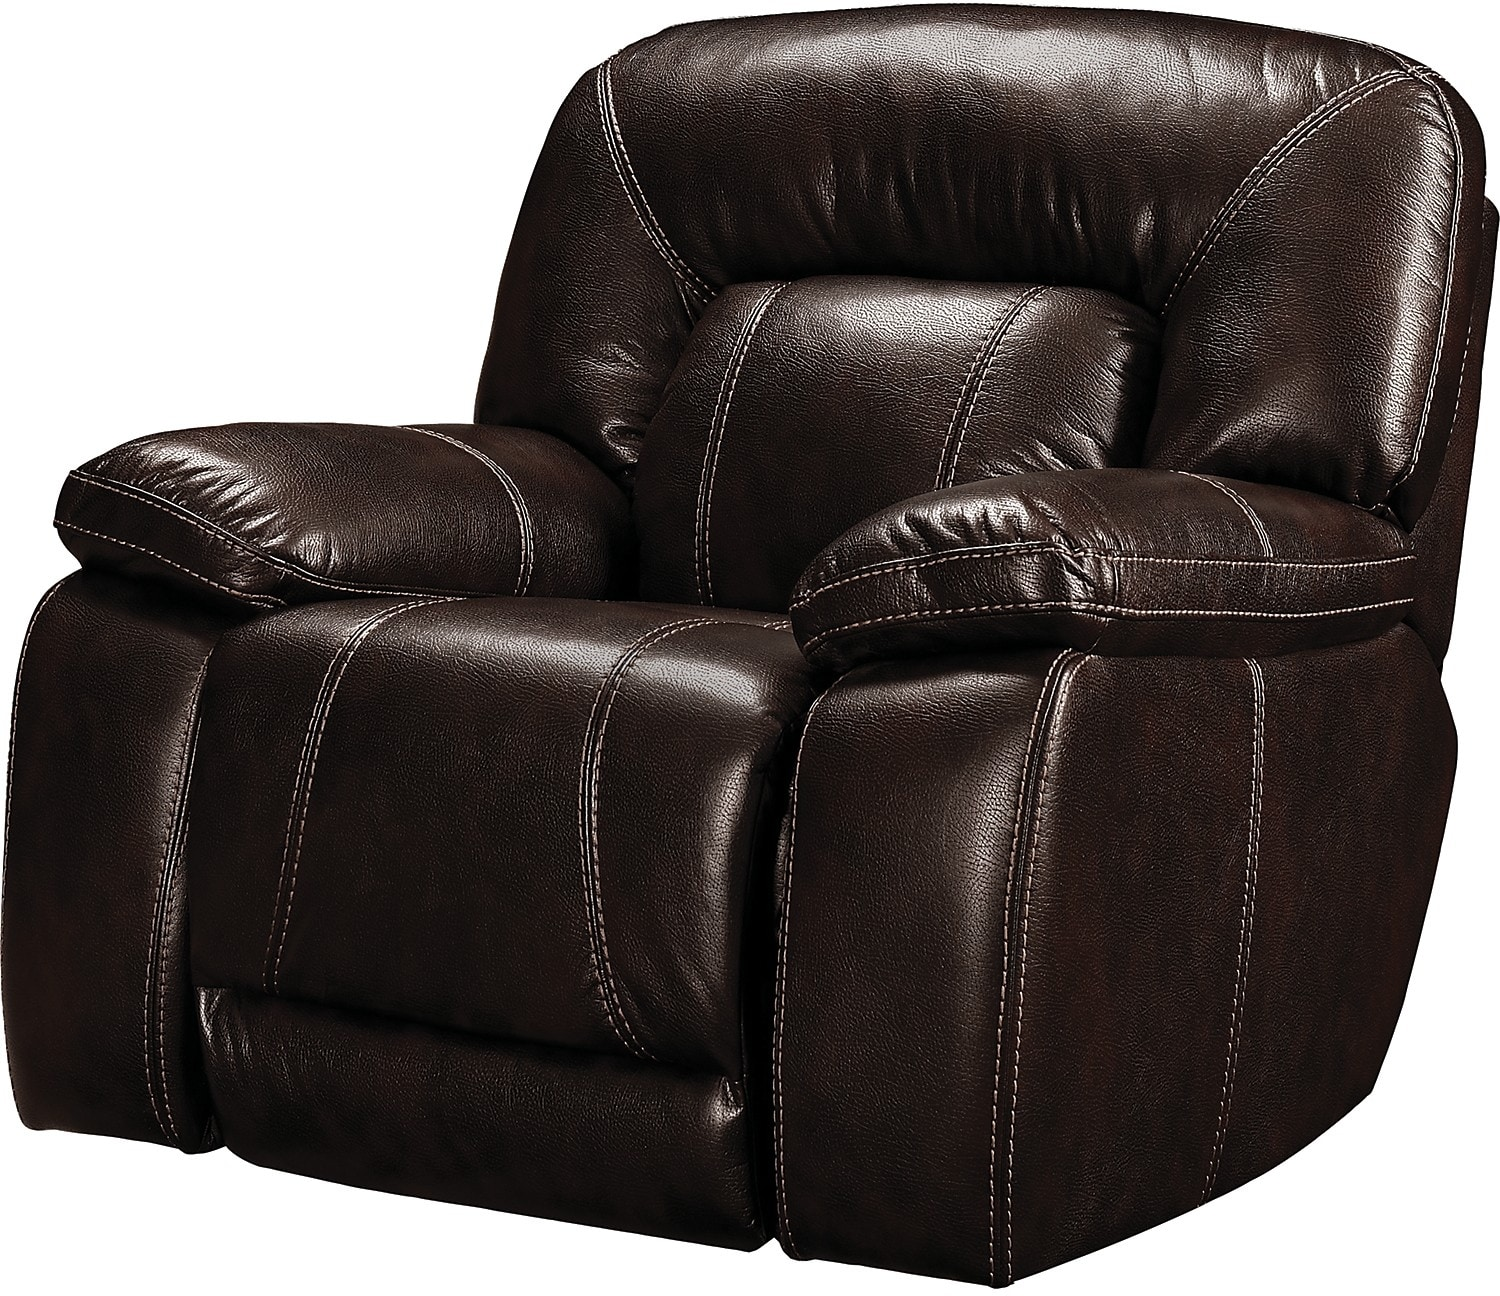 Kimba Leather-Look Fabric Reclining Chair – Brown